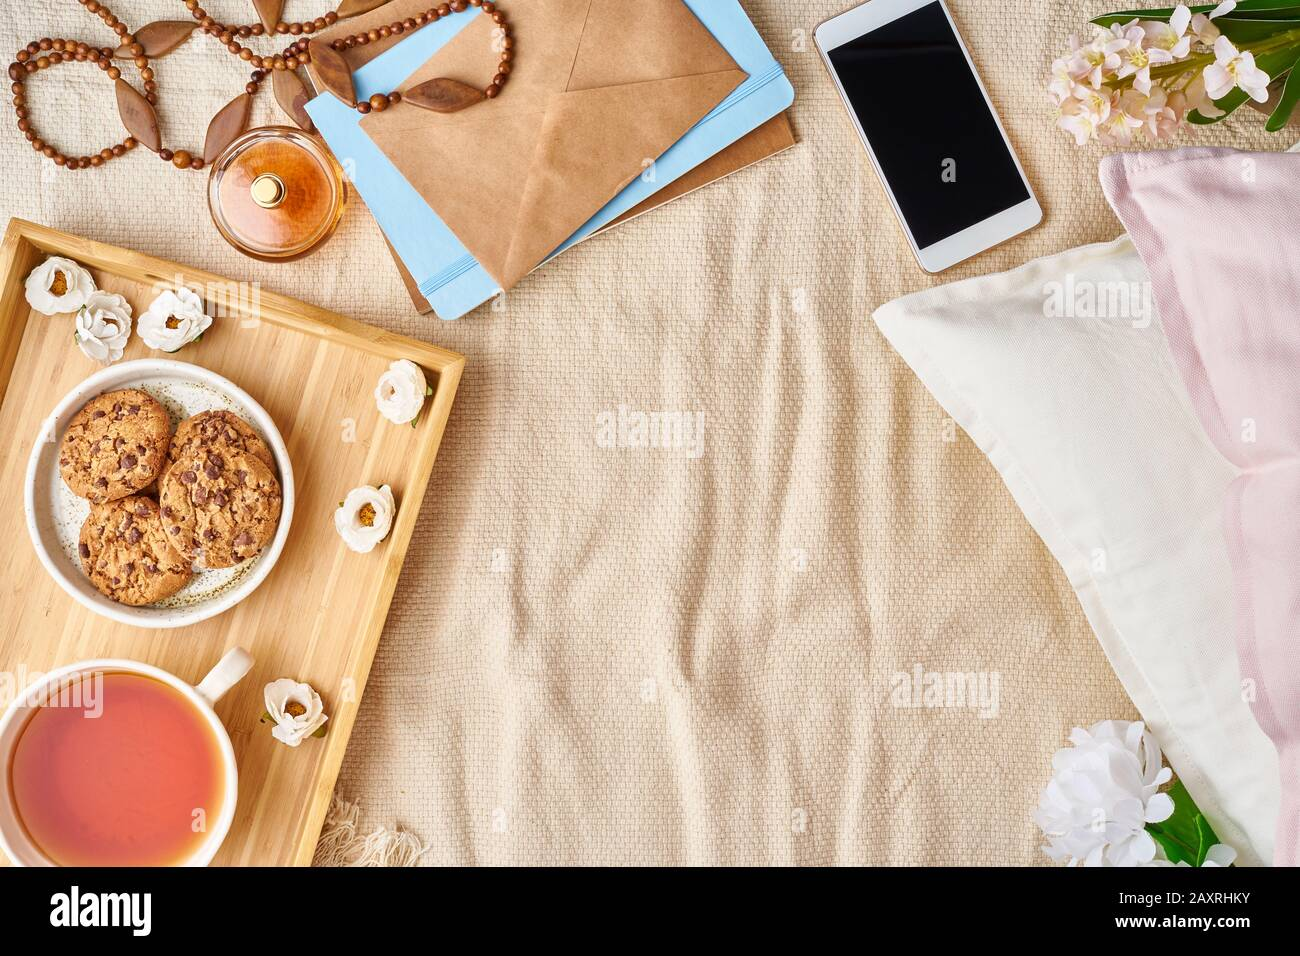 Mockup With Women S Accessories On Bed Tea Cookies Pillows Flowers Letter Notebook Stock Photo Alamy